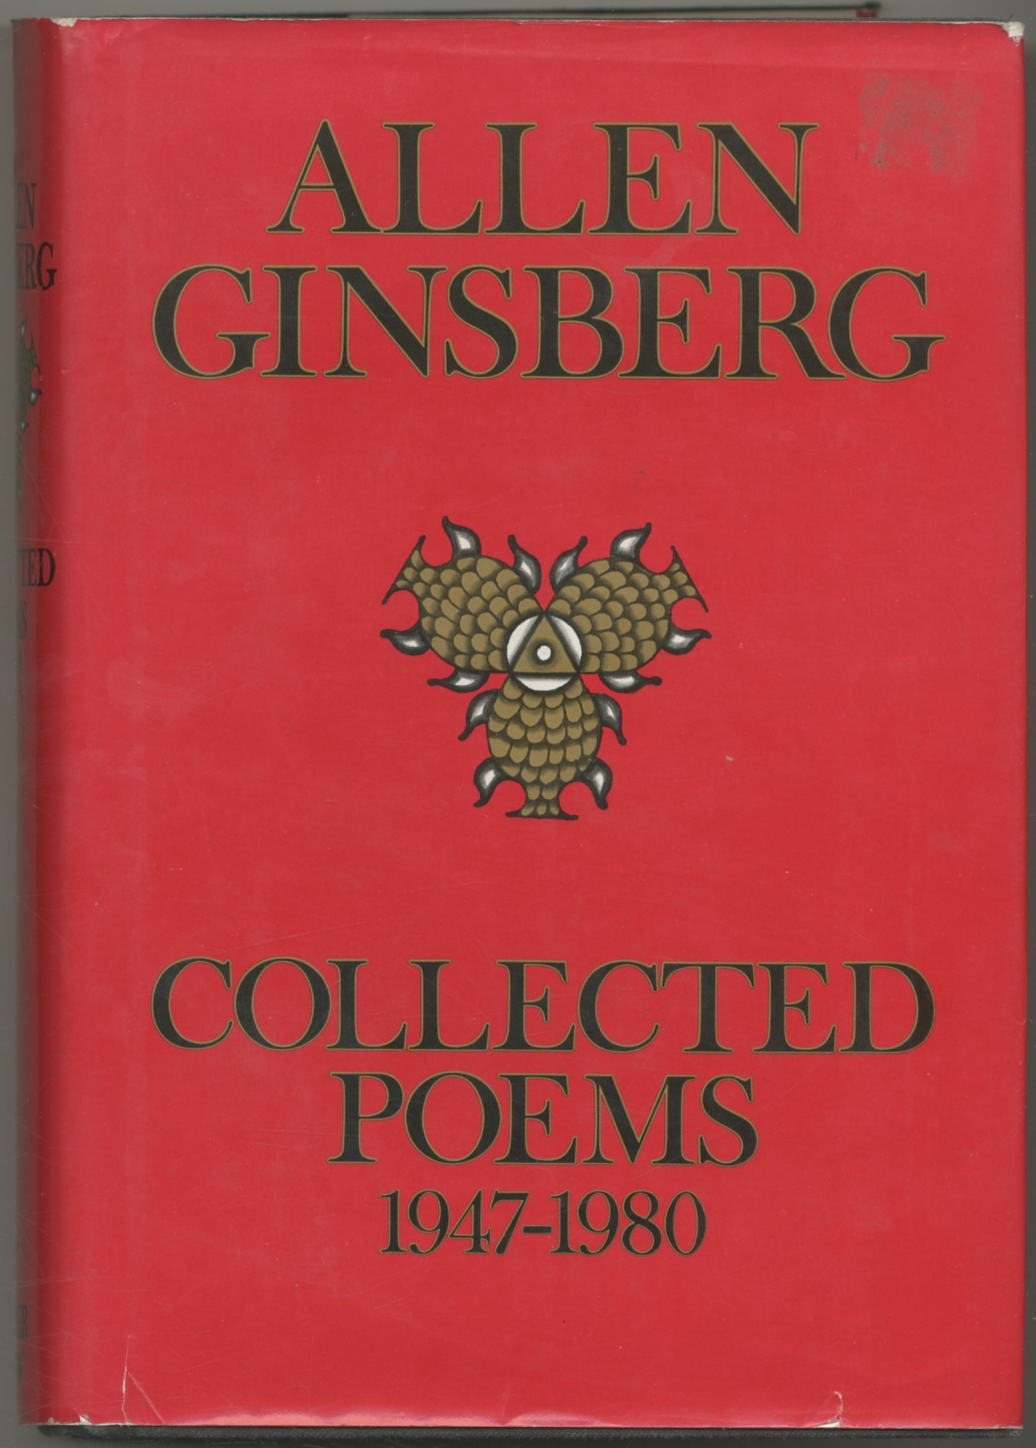 Details About Allen Ginsberg Collected Poems 1947 1980 Signed 1st Edition 1984